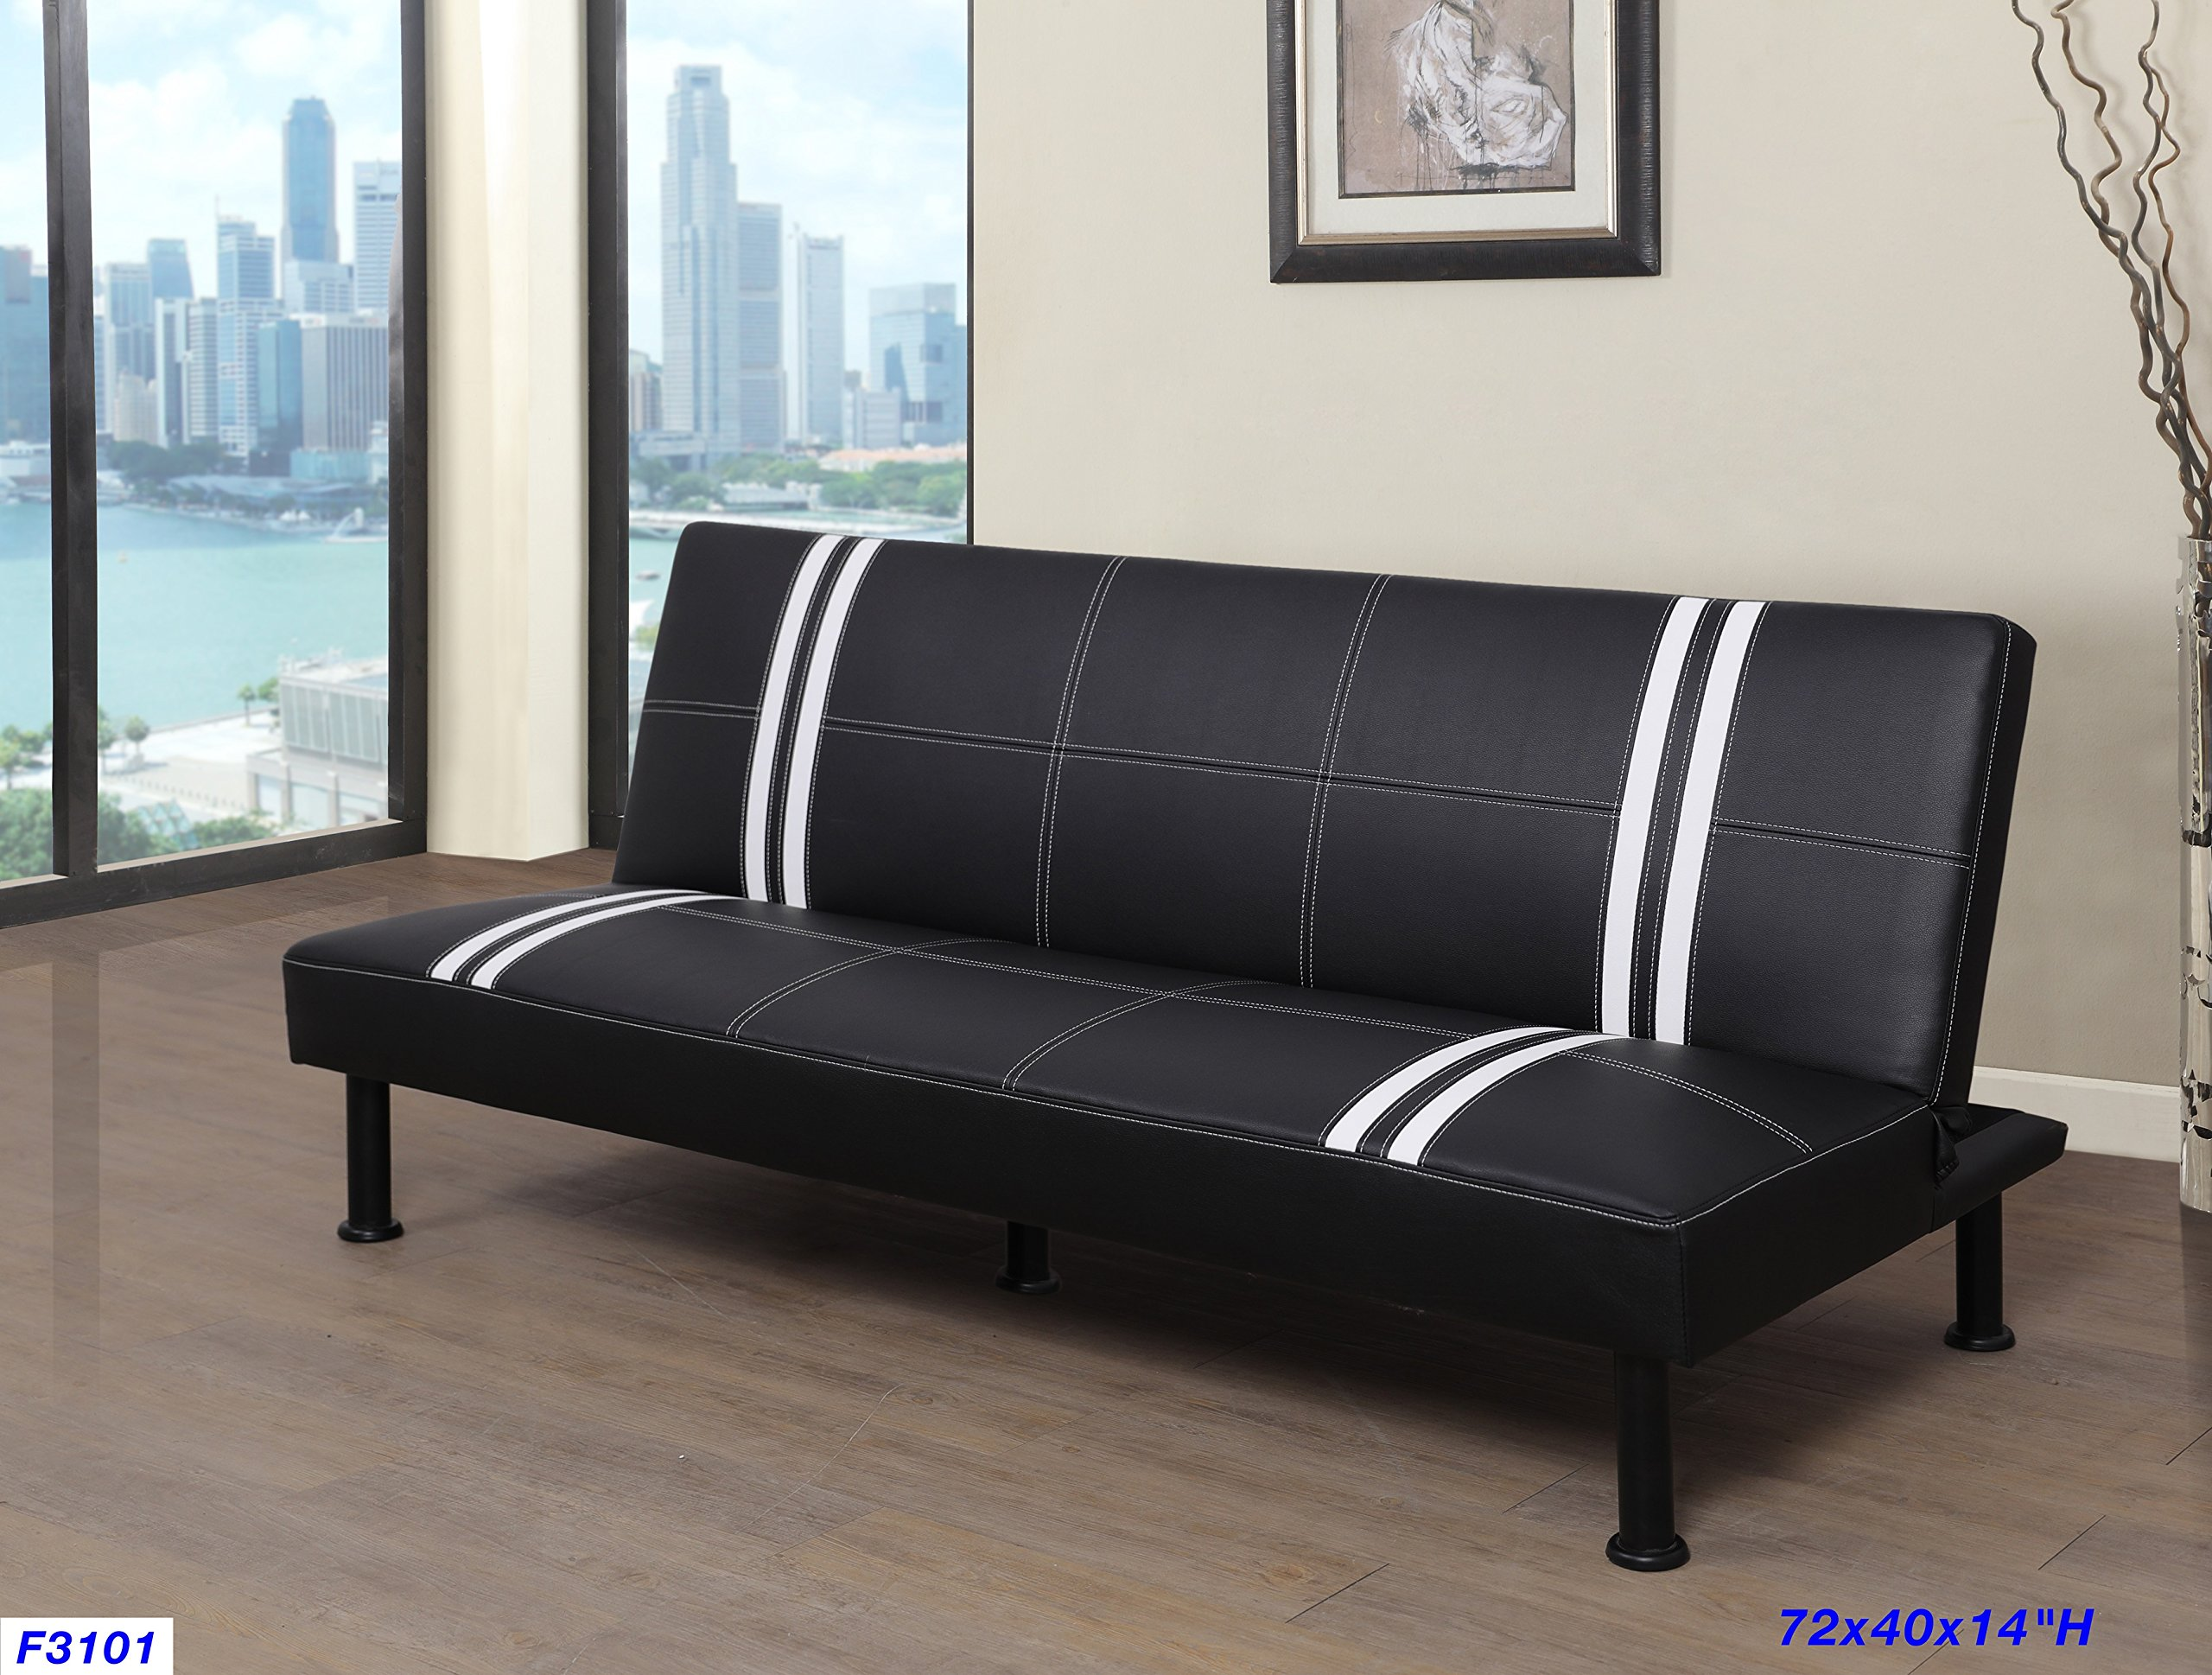 Beverly Furniture F3101 Futon Convertible Sofa Black/White by Beverly Furniture